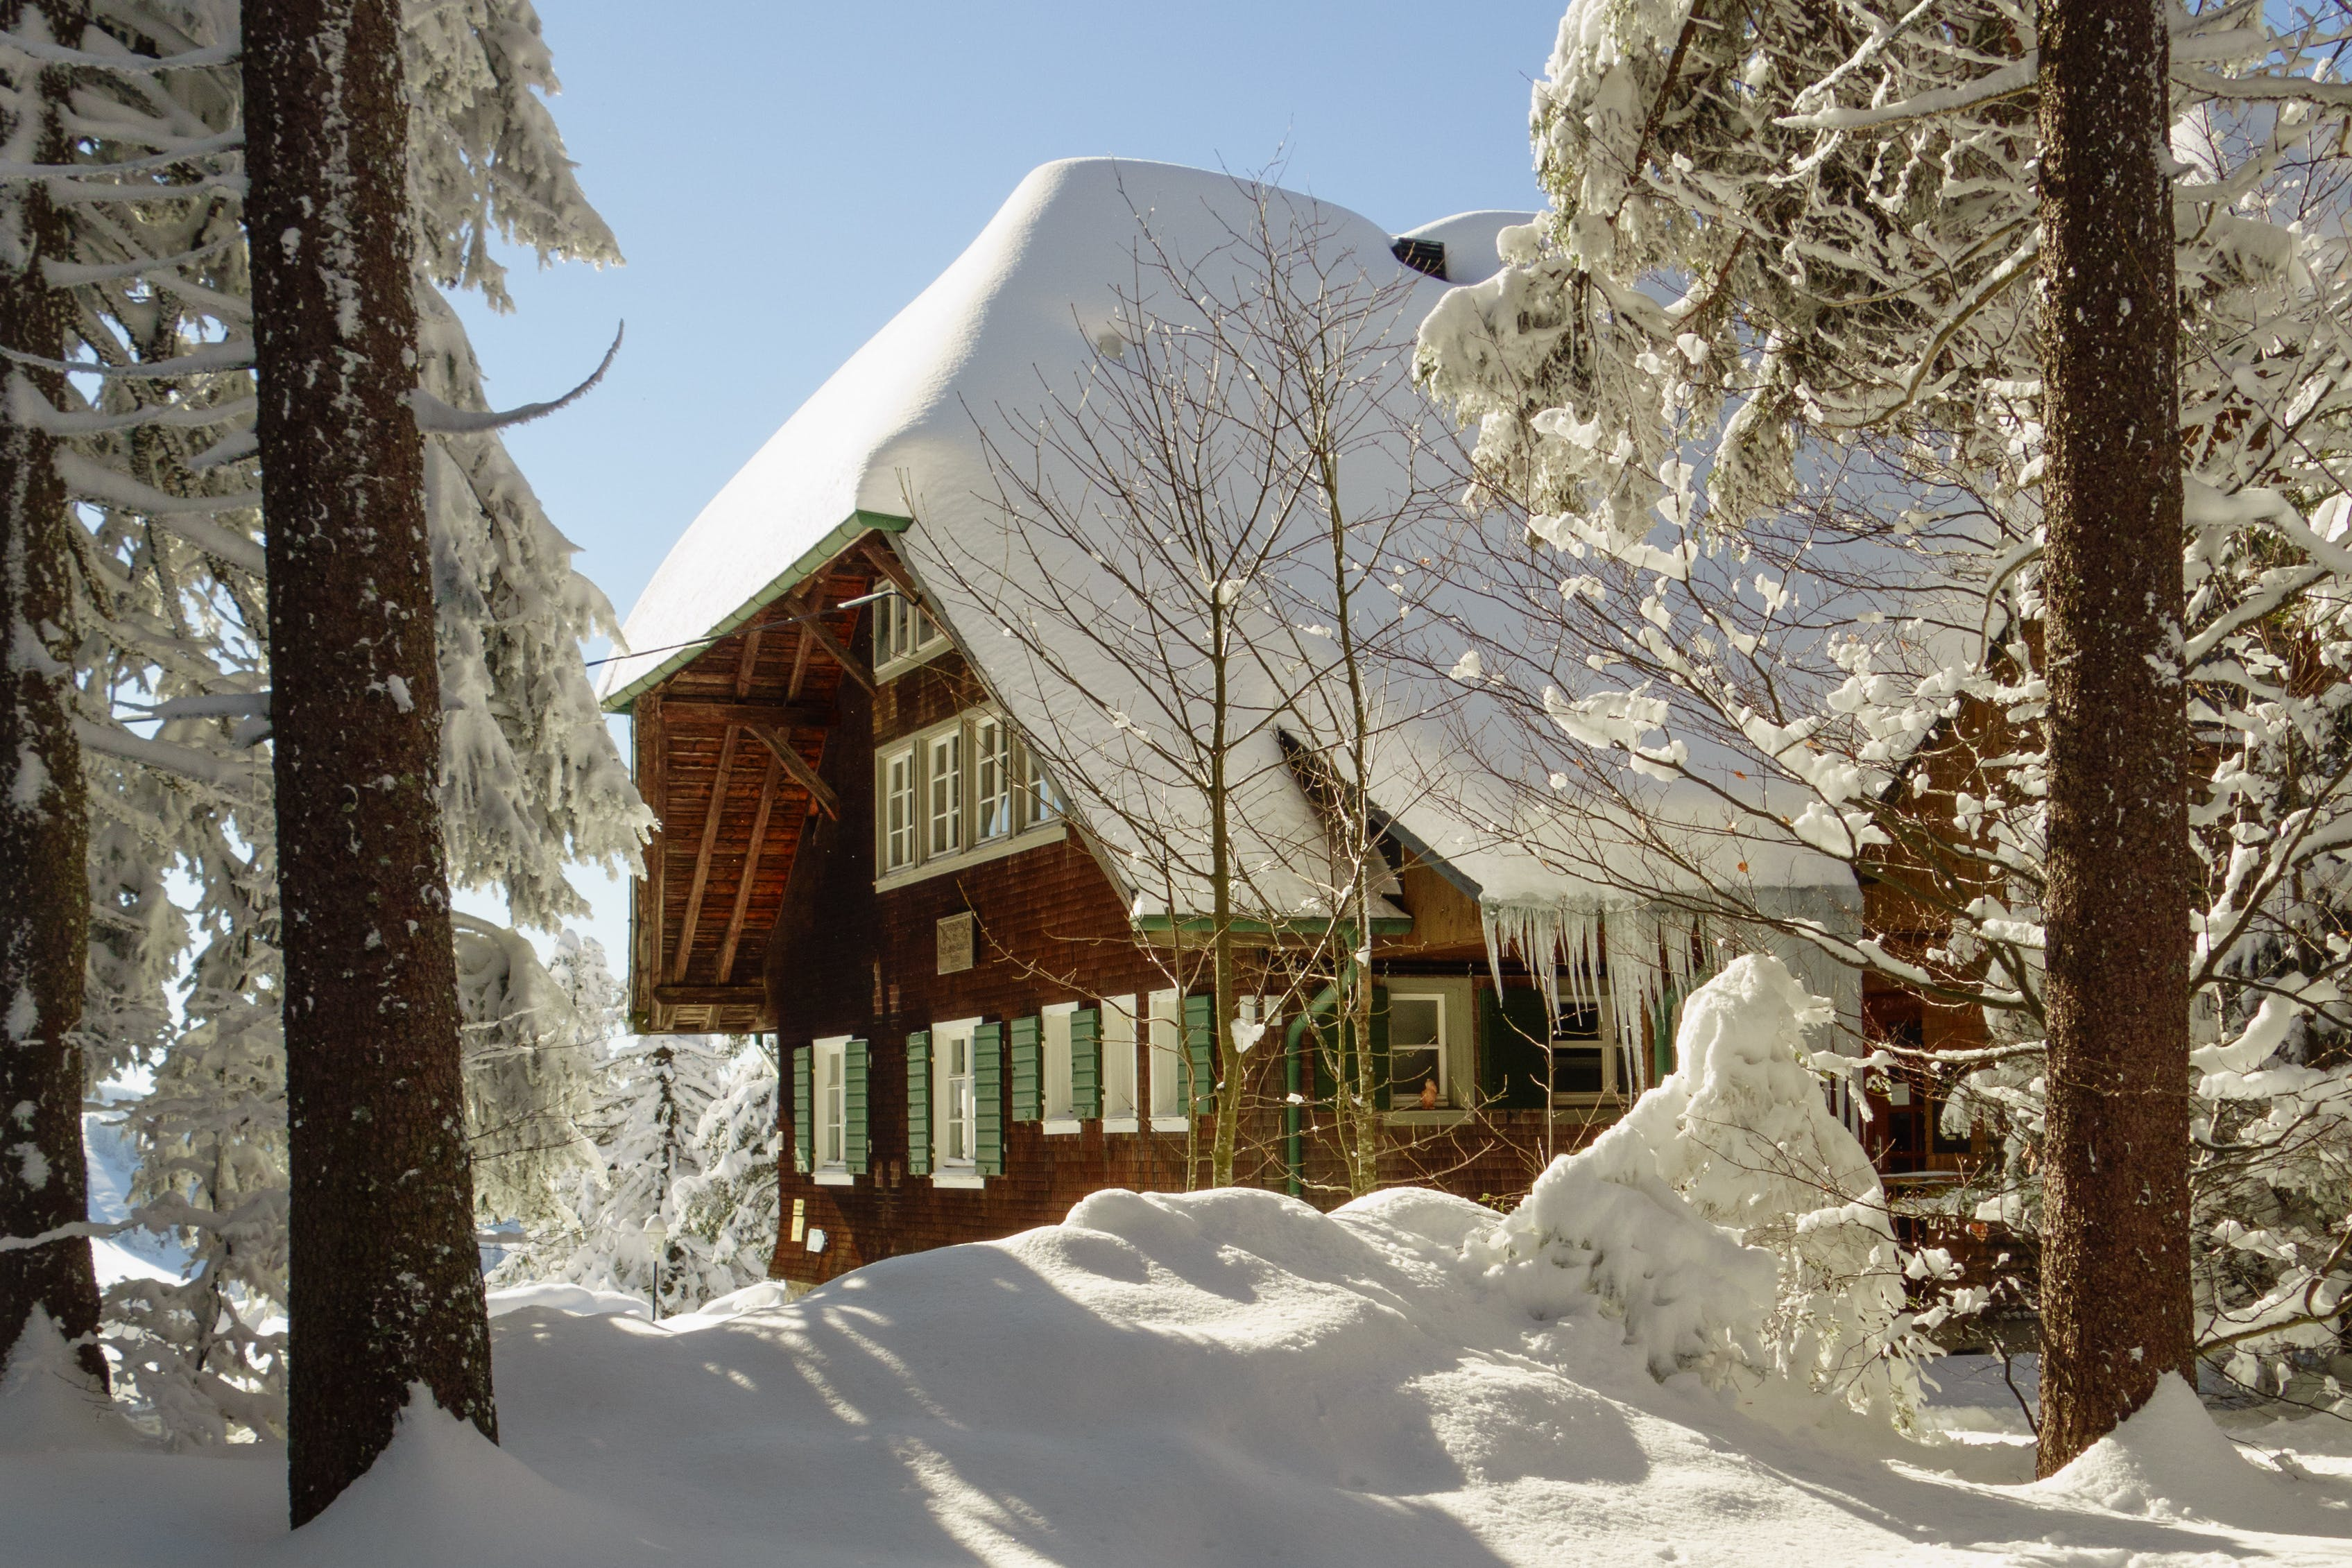 Brown and White Wooden House Covered With Snow